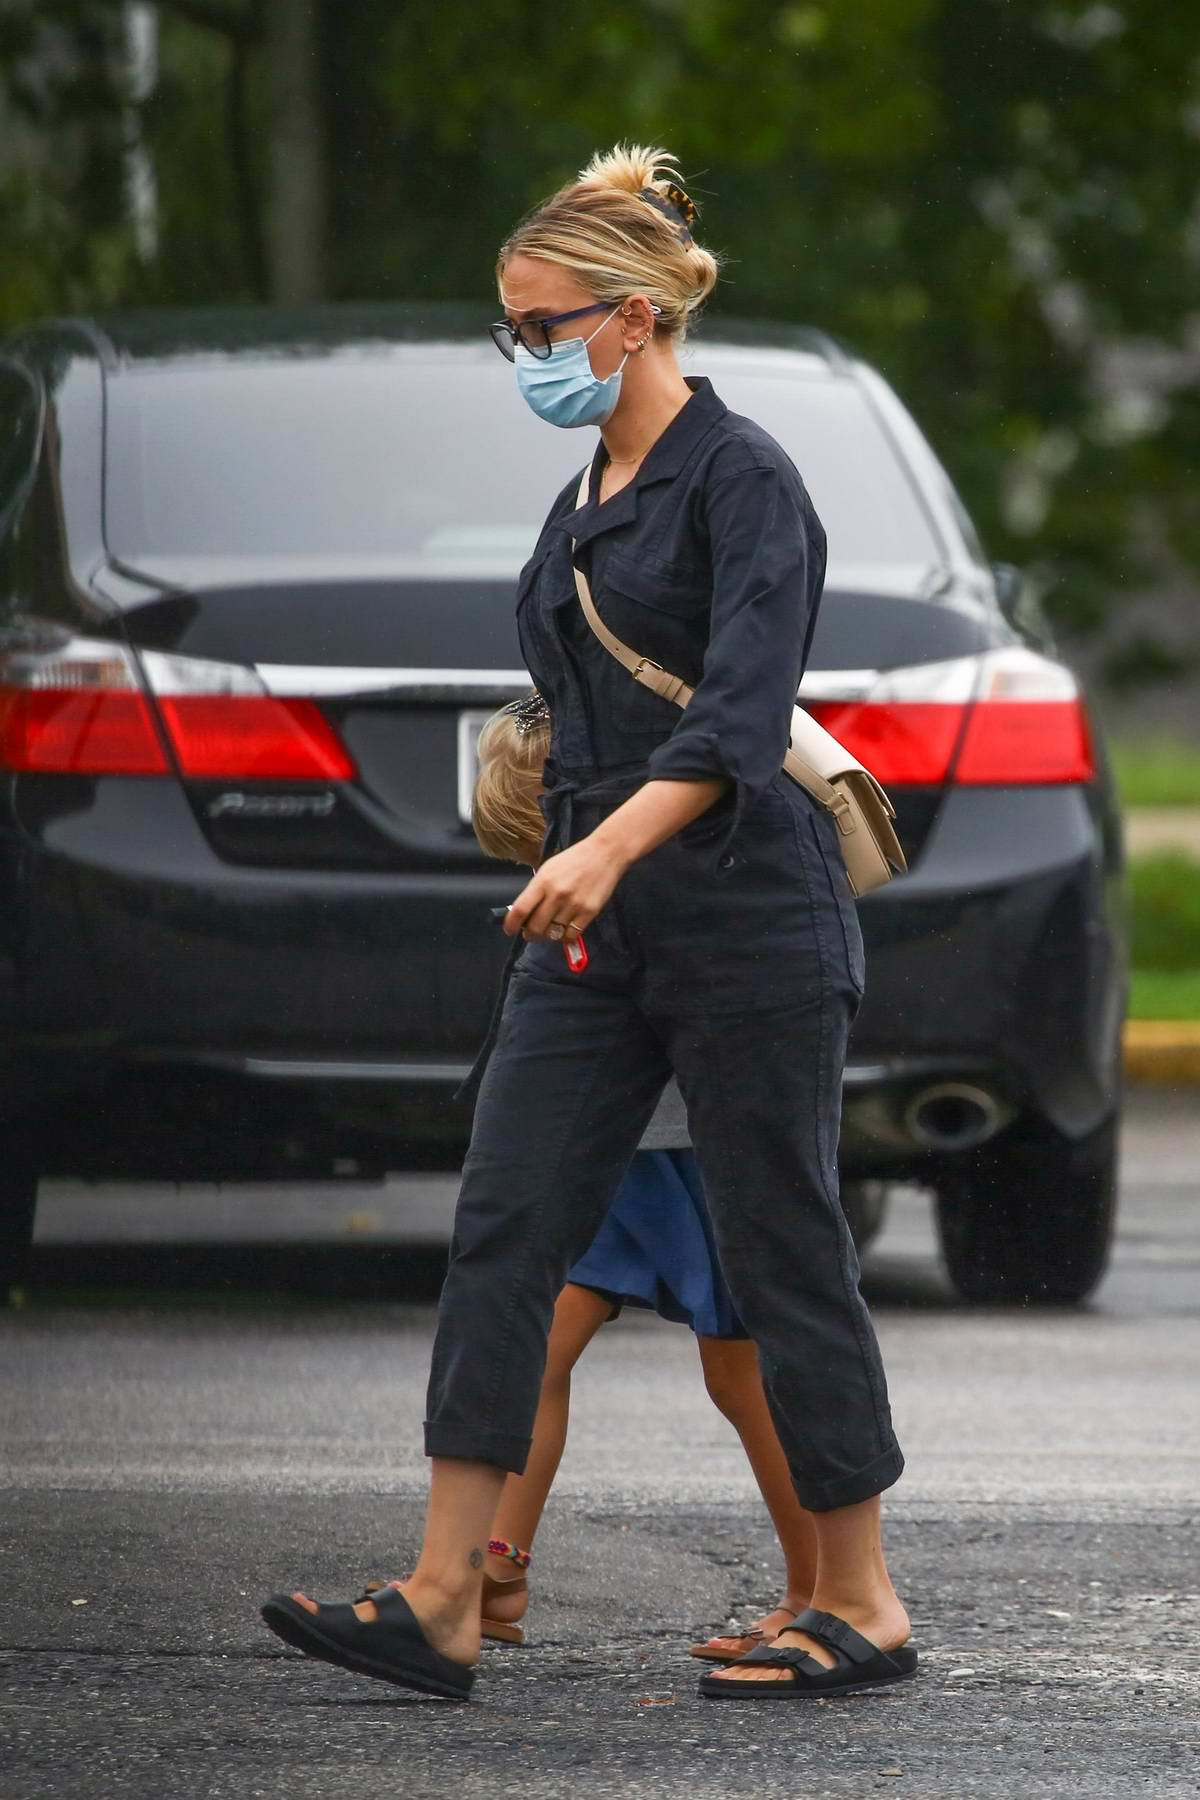 Scarlett Johansson seen grocery shopping with her daughter in the Hamptons, New York